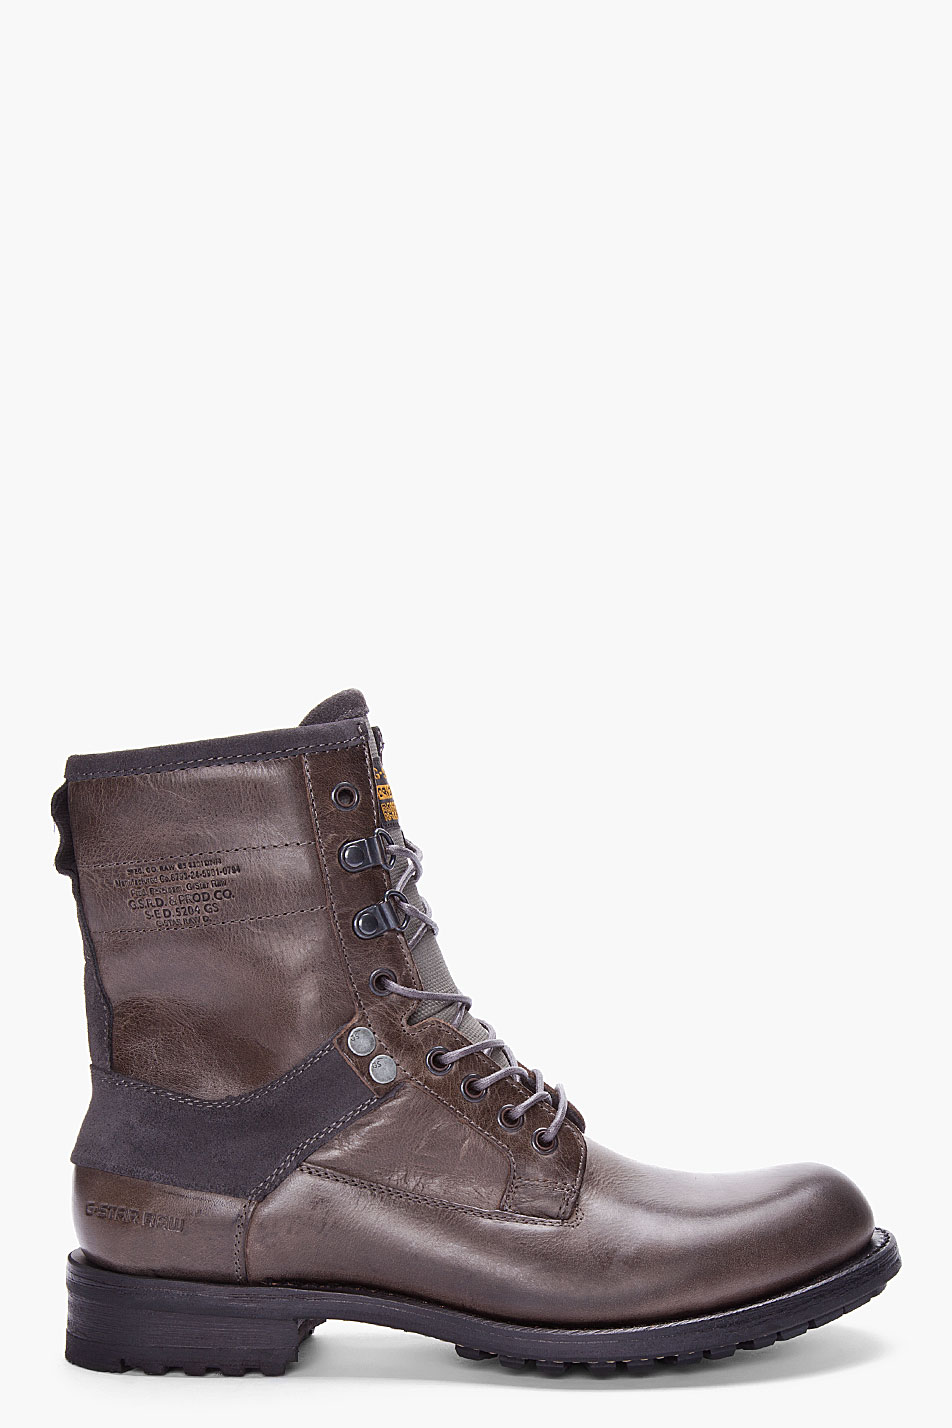 g star raw charcoal patton iii narltor boots in gray for men charcoal lyst. Black Bedroom Furniture Sets. Home Design Ideas